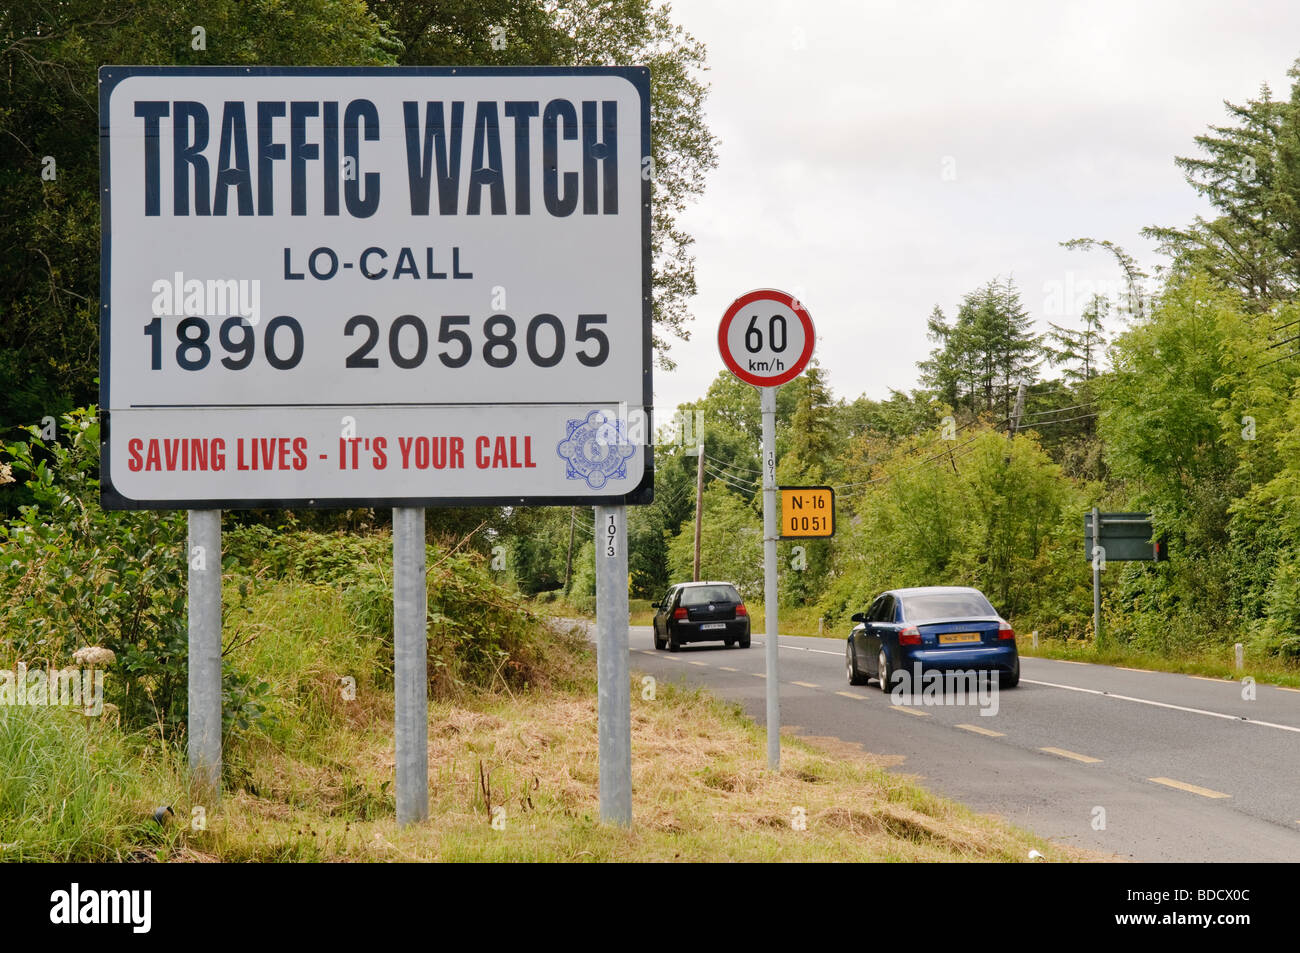 'Traffic Watch' road safety sign in Ireland - Stock Image